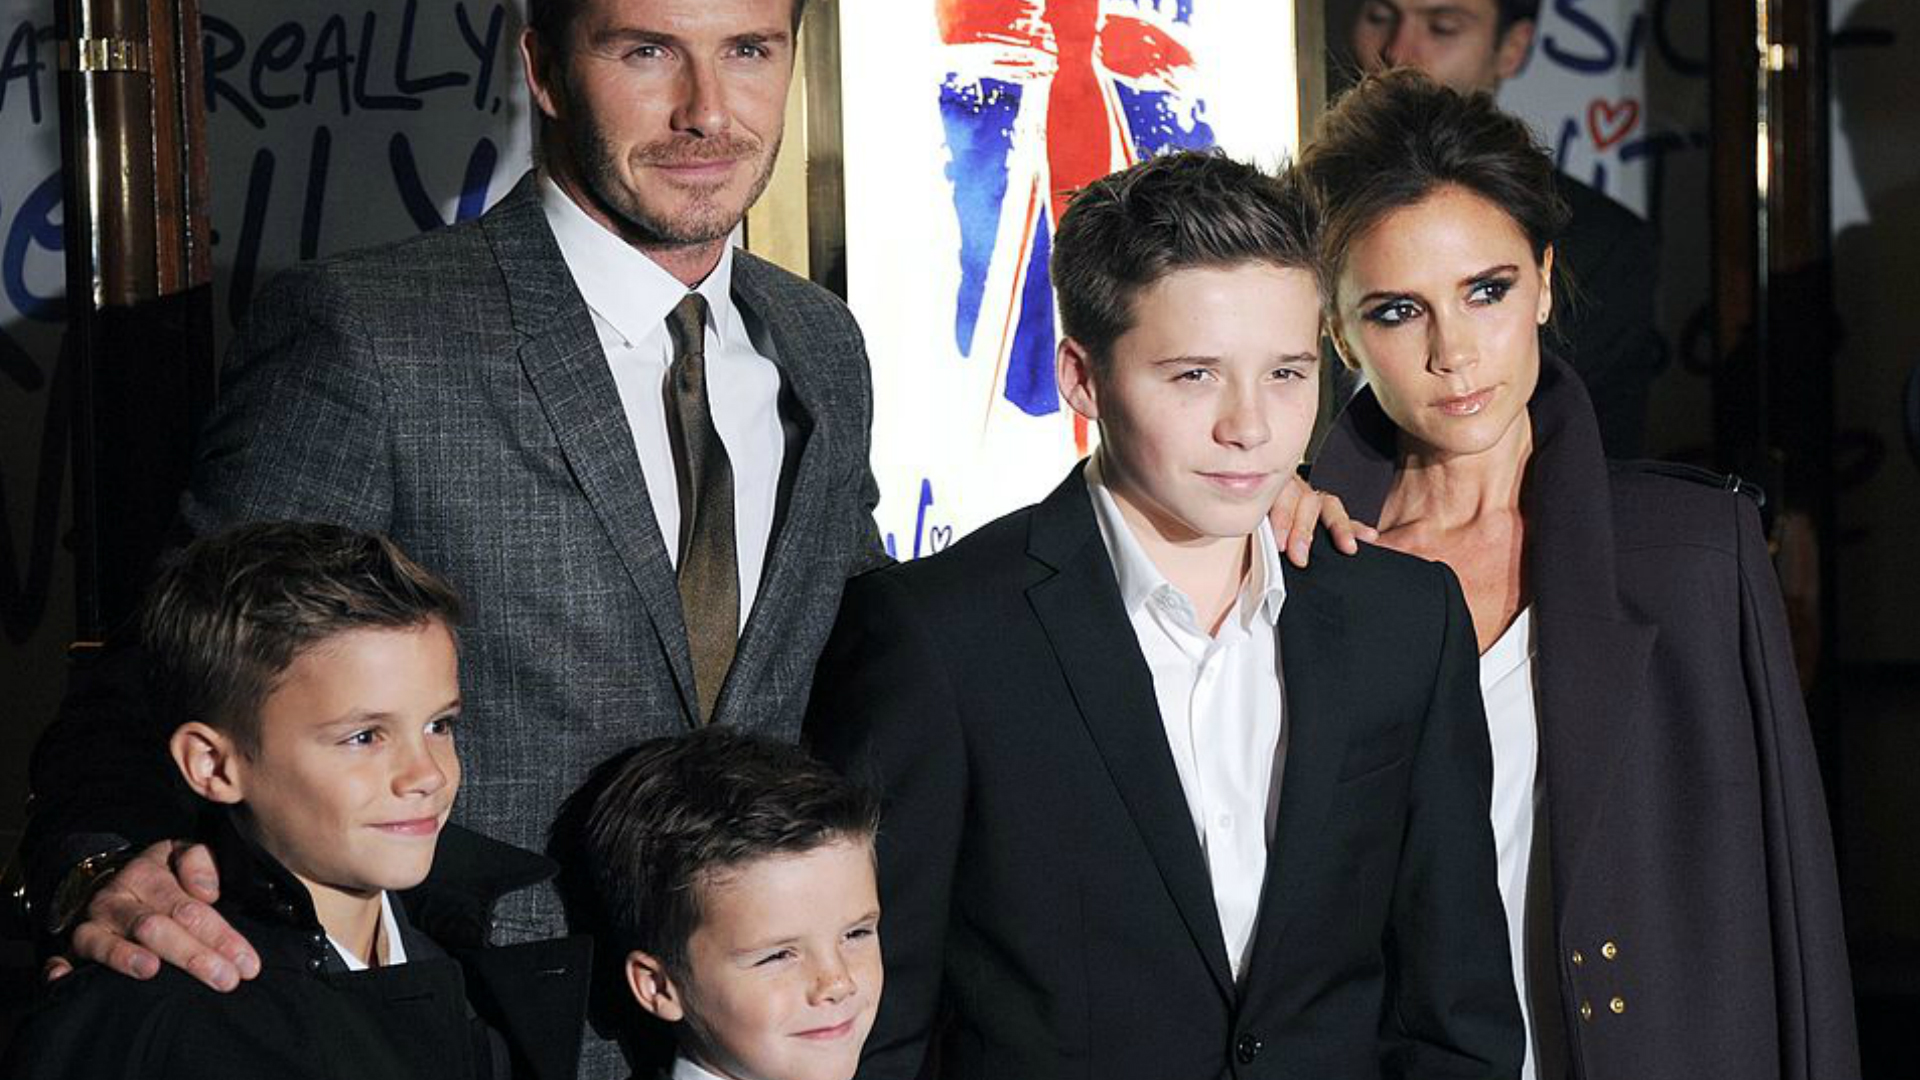 Cruz Beckham with his family